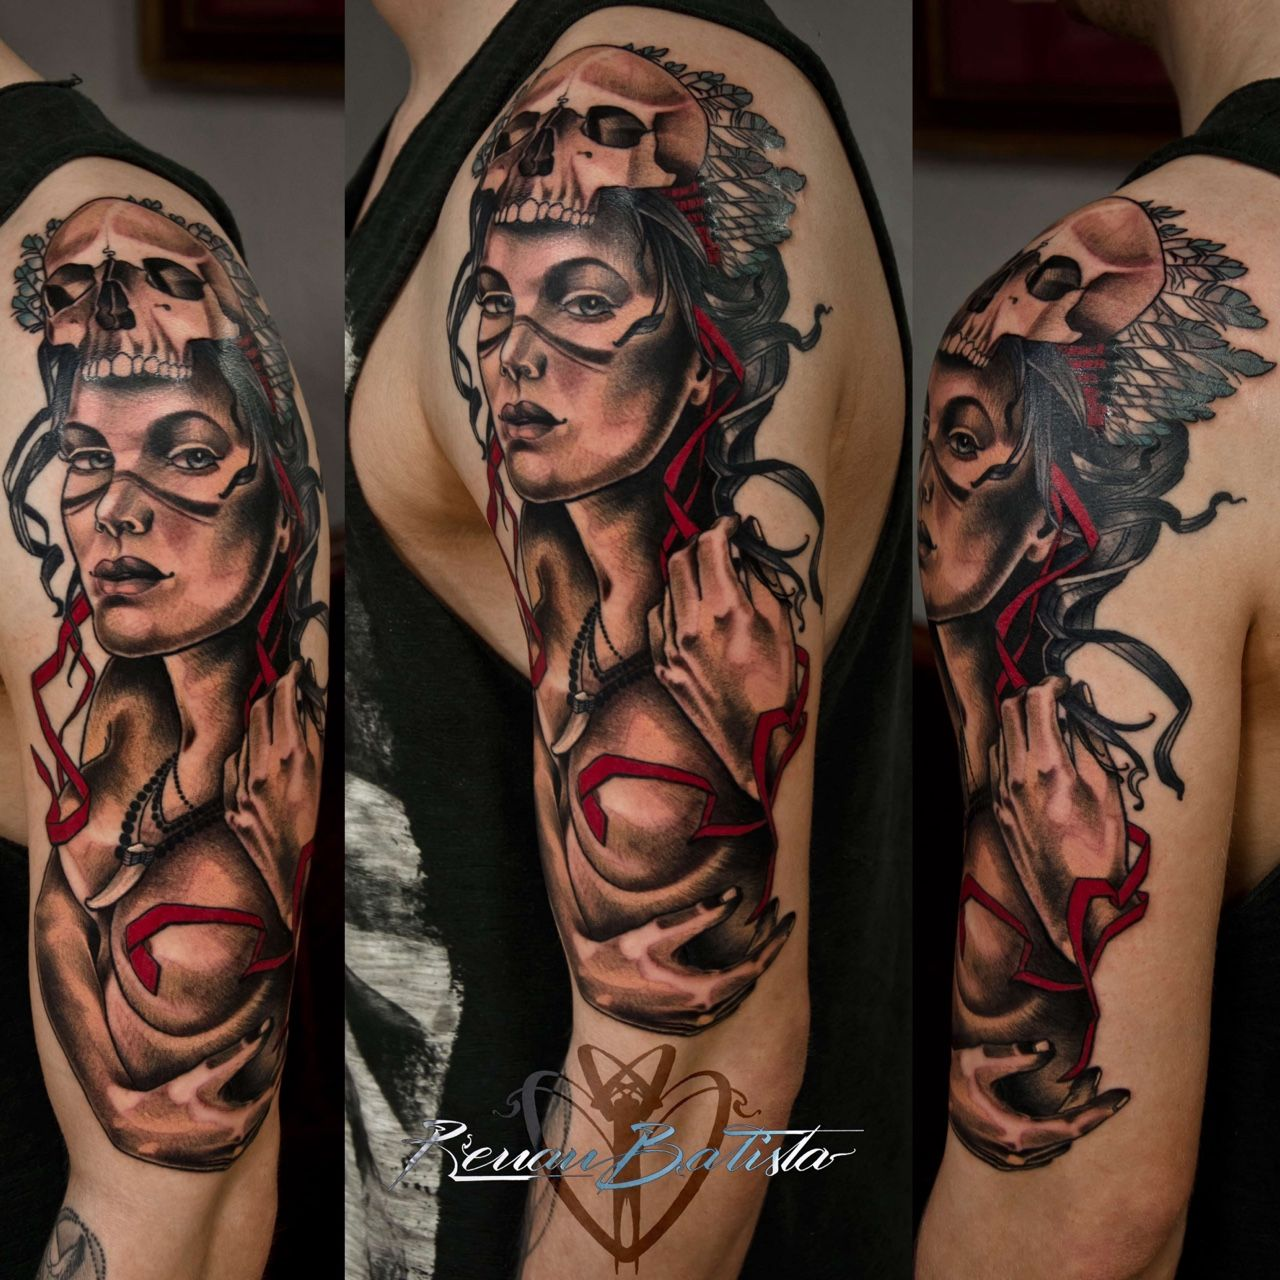 30 Positive Tattoo Ideas For Women That Are Very: Indian Girl That I've Done In Two Sessions On A Very Good